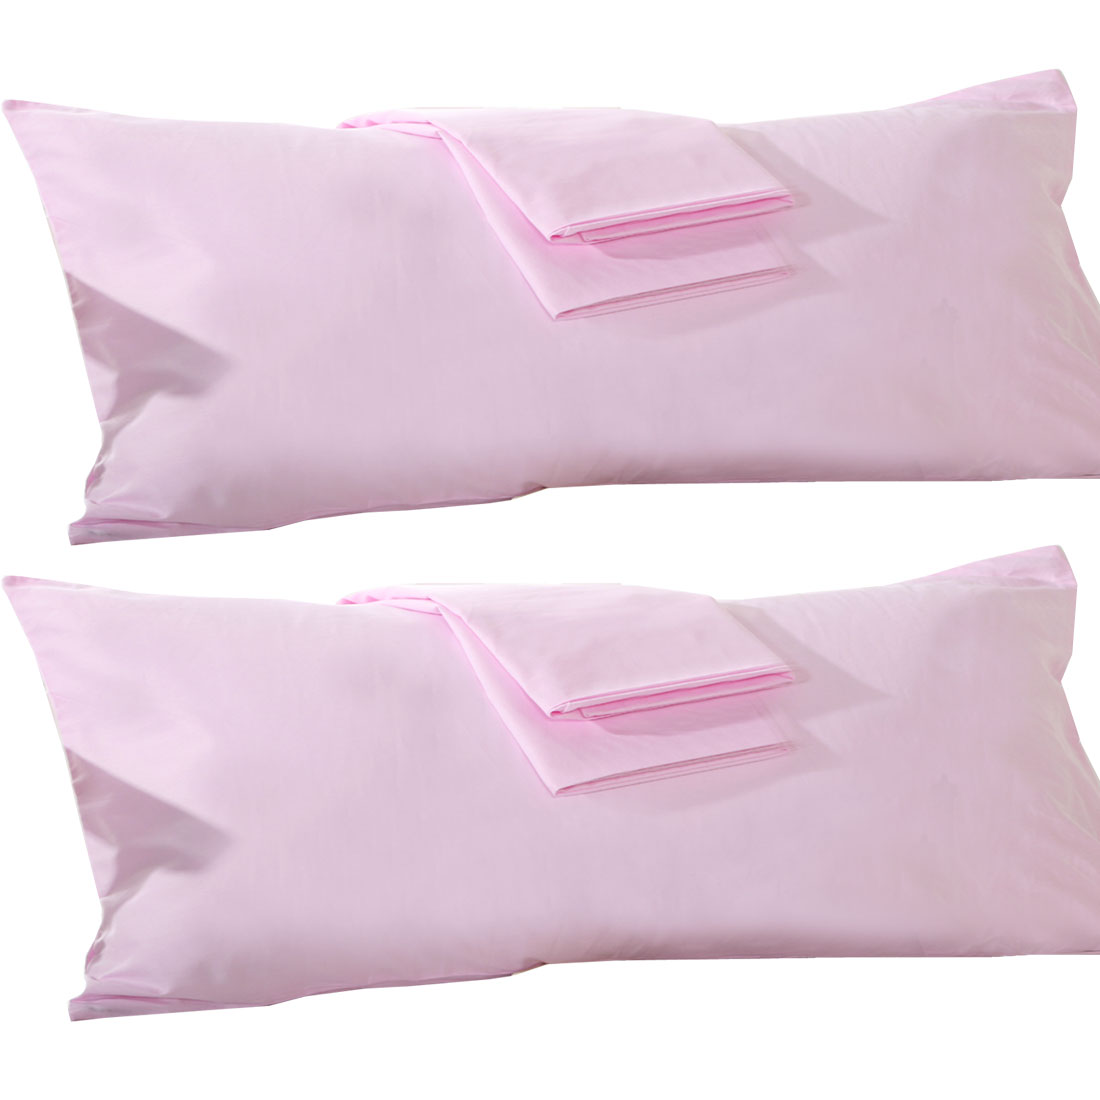 "Unique Bargains 2 Pack, 20"" x 55"" Body Pillowcase Pillow Case Cover Egyptian Cotton, Body Pillow Cover Sliver"